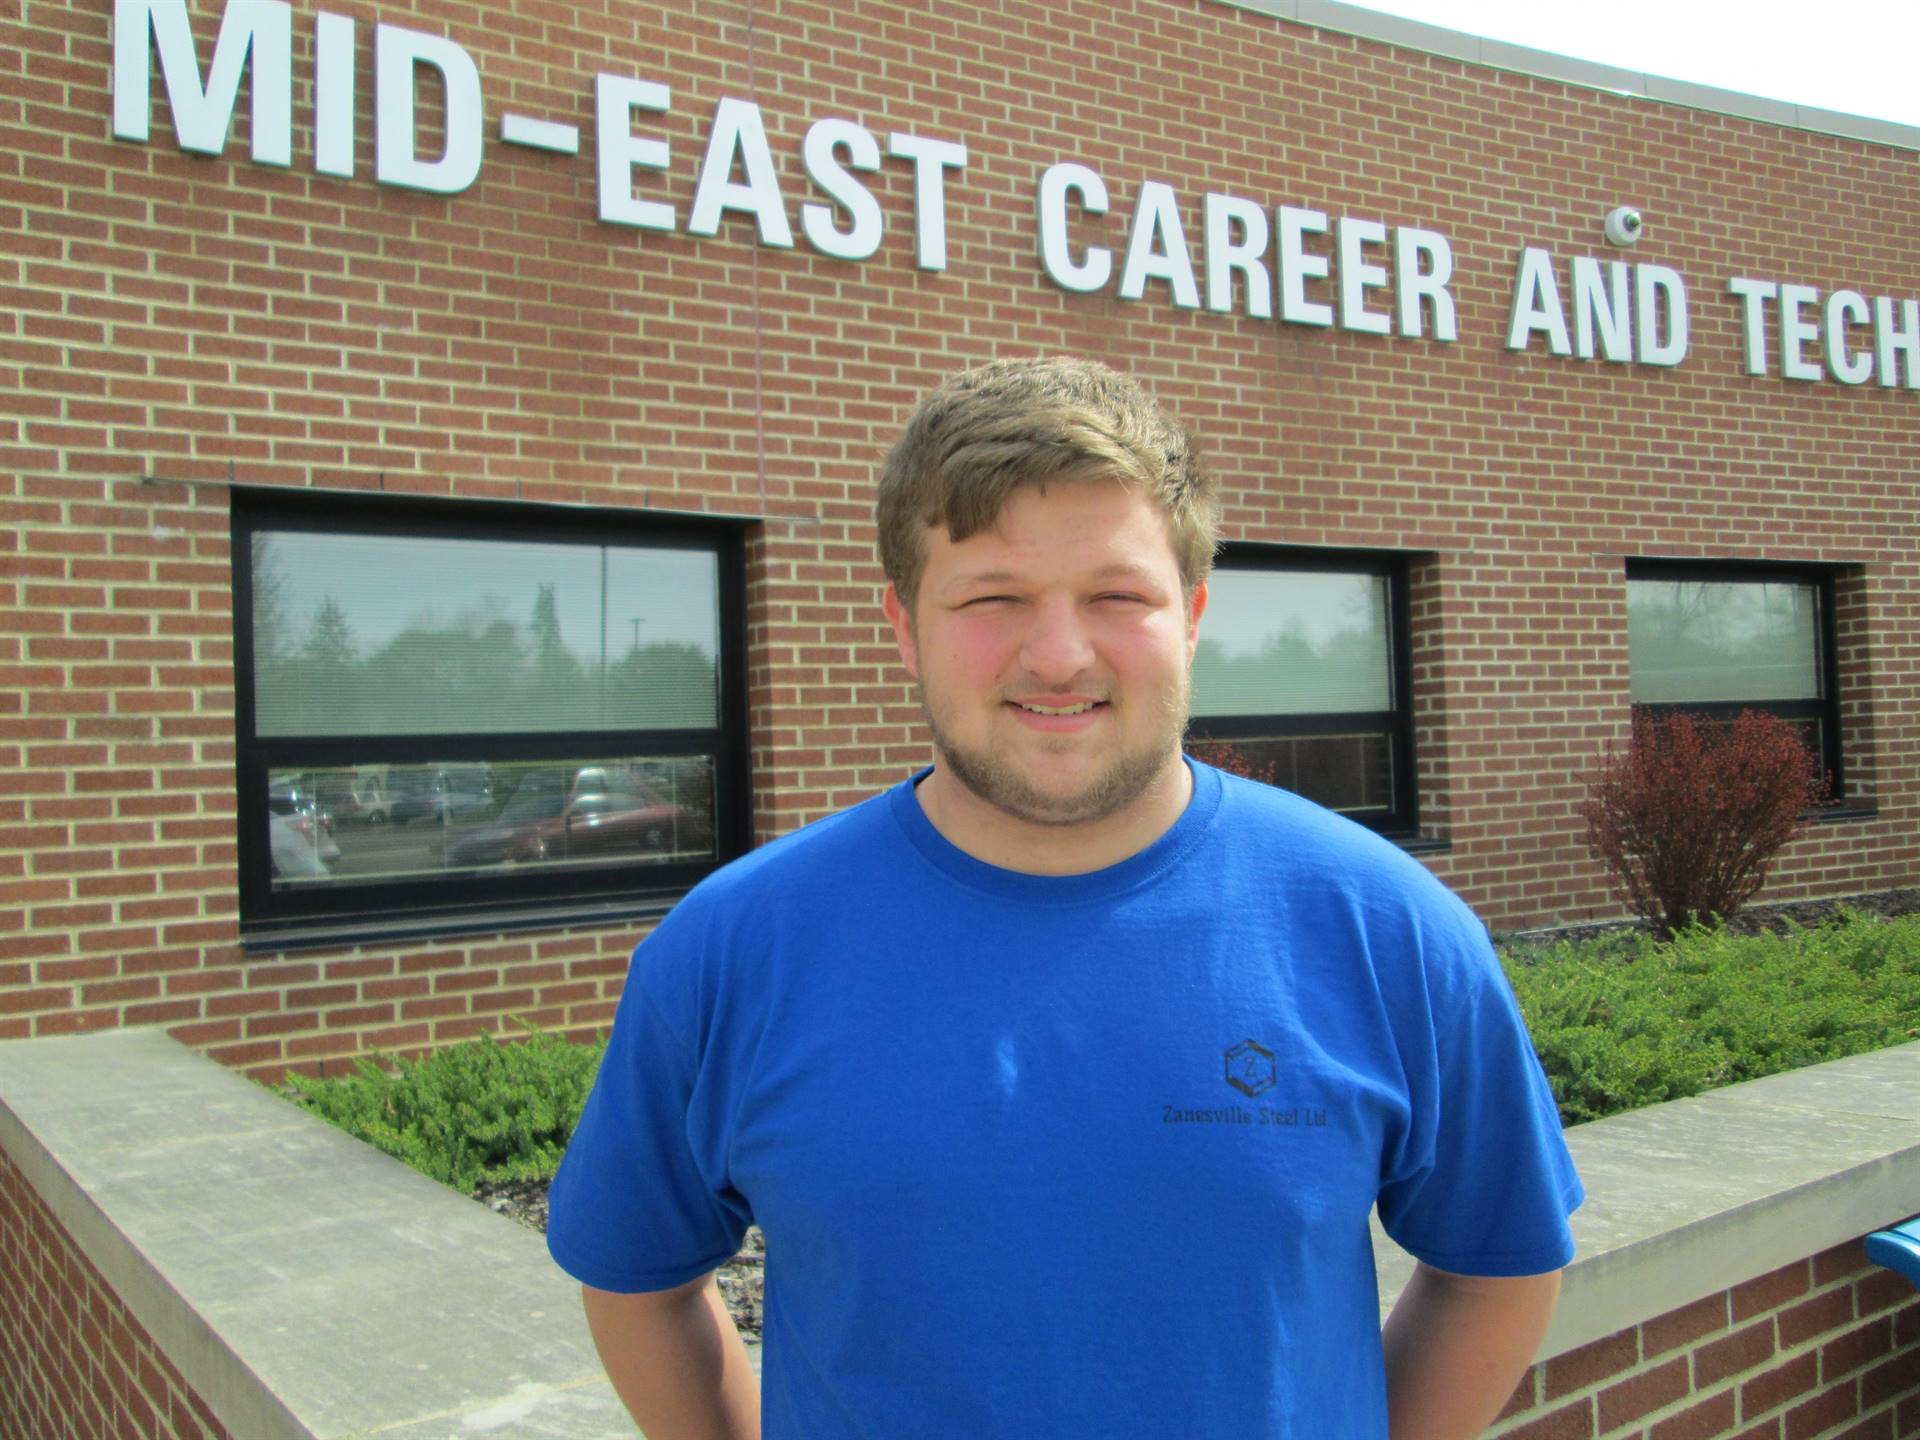 Justin Colburn - Welding Technology - Zanesville Steel Ltd.